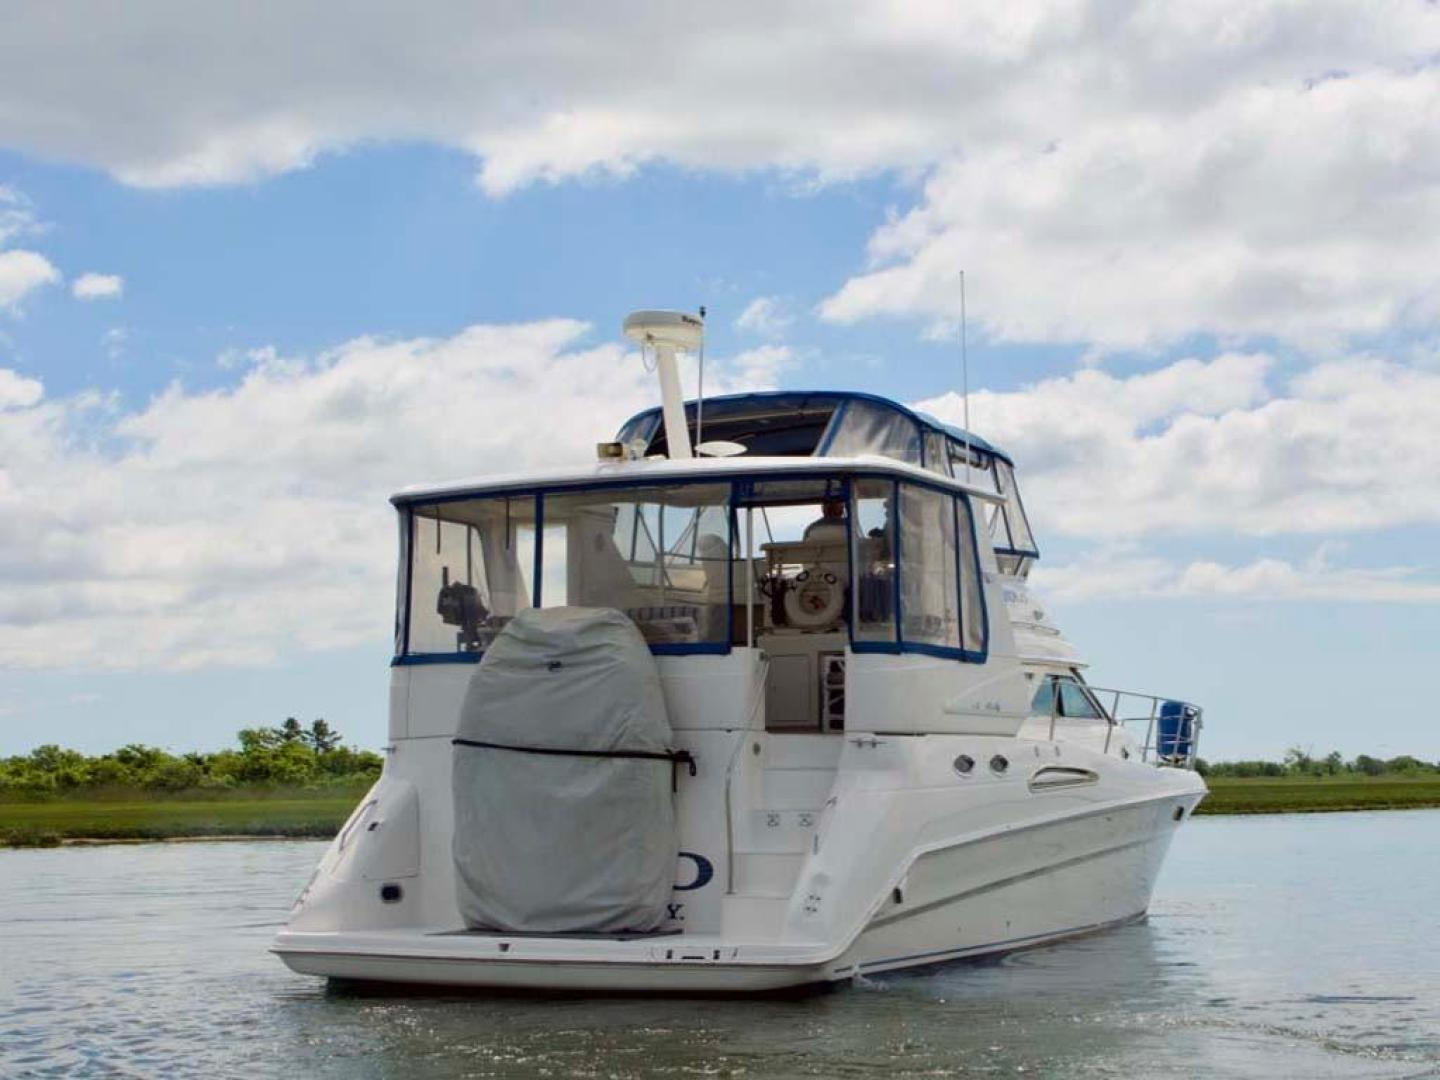 Sea-Ray-420-Aft-Cabin-2000-YOLO-Long-Island-New-York-United-States-Starboard-930312